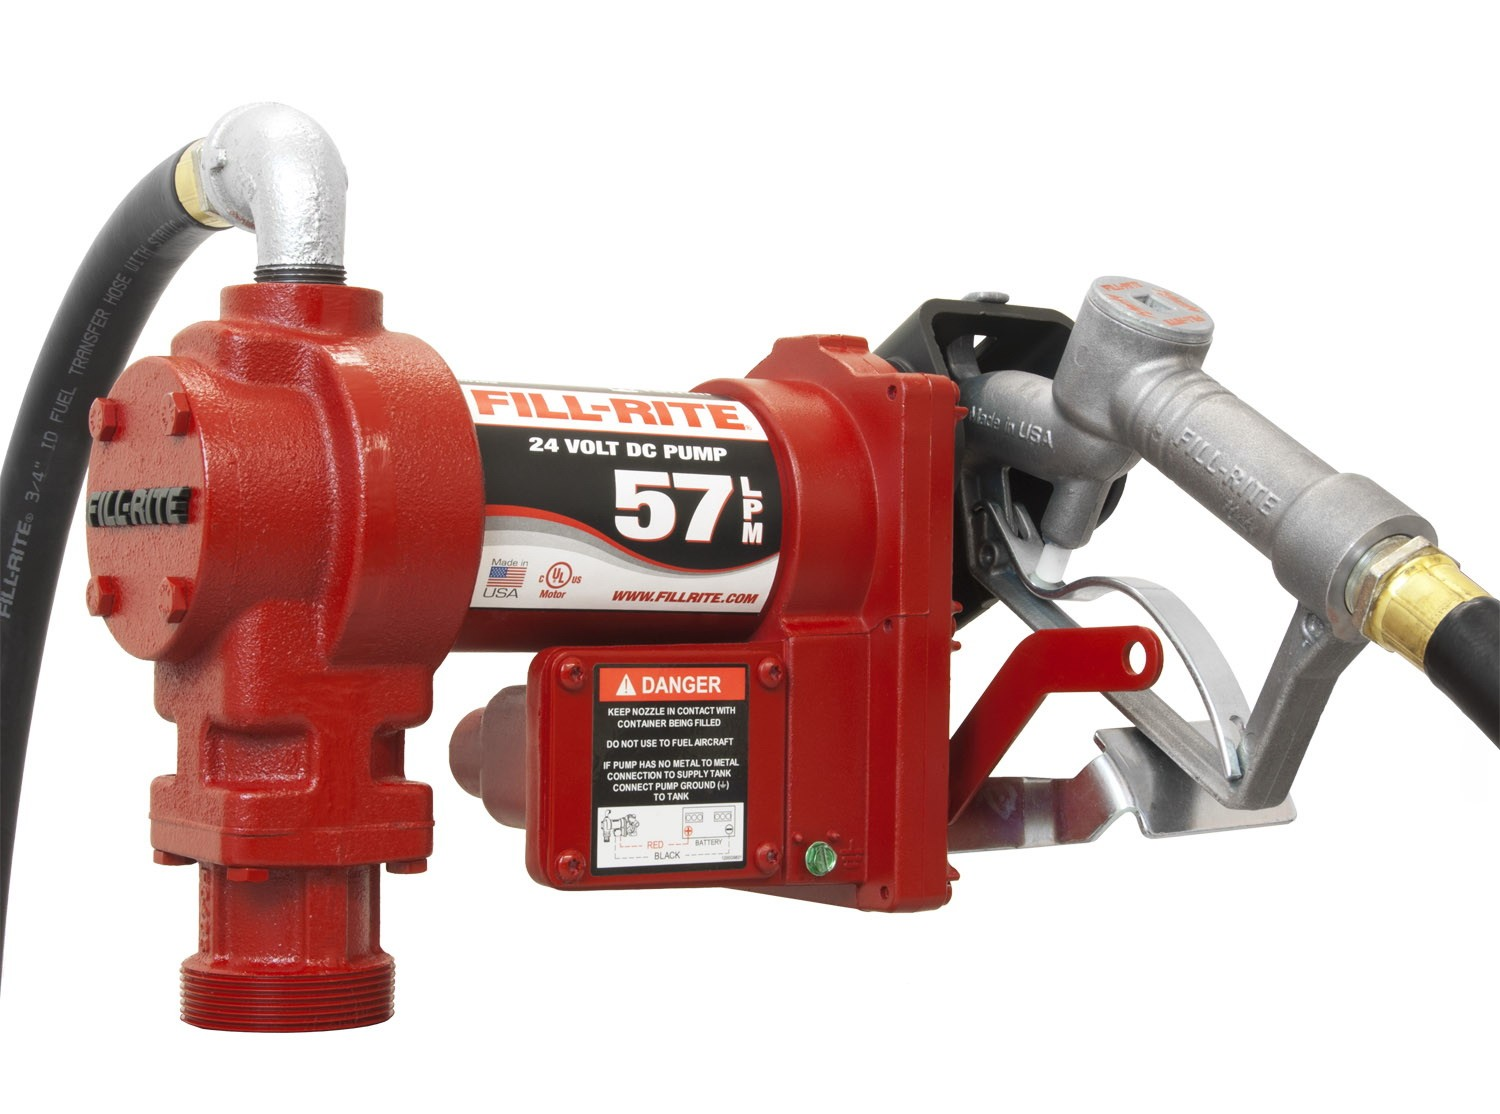 "Fill-Rite FR2410GEA 24V DC Fuel Transfer Pump with 3/4"" Automatic Nozzle (15 GPM)"